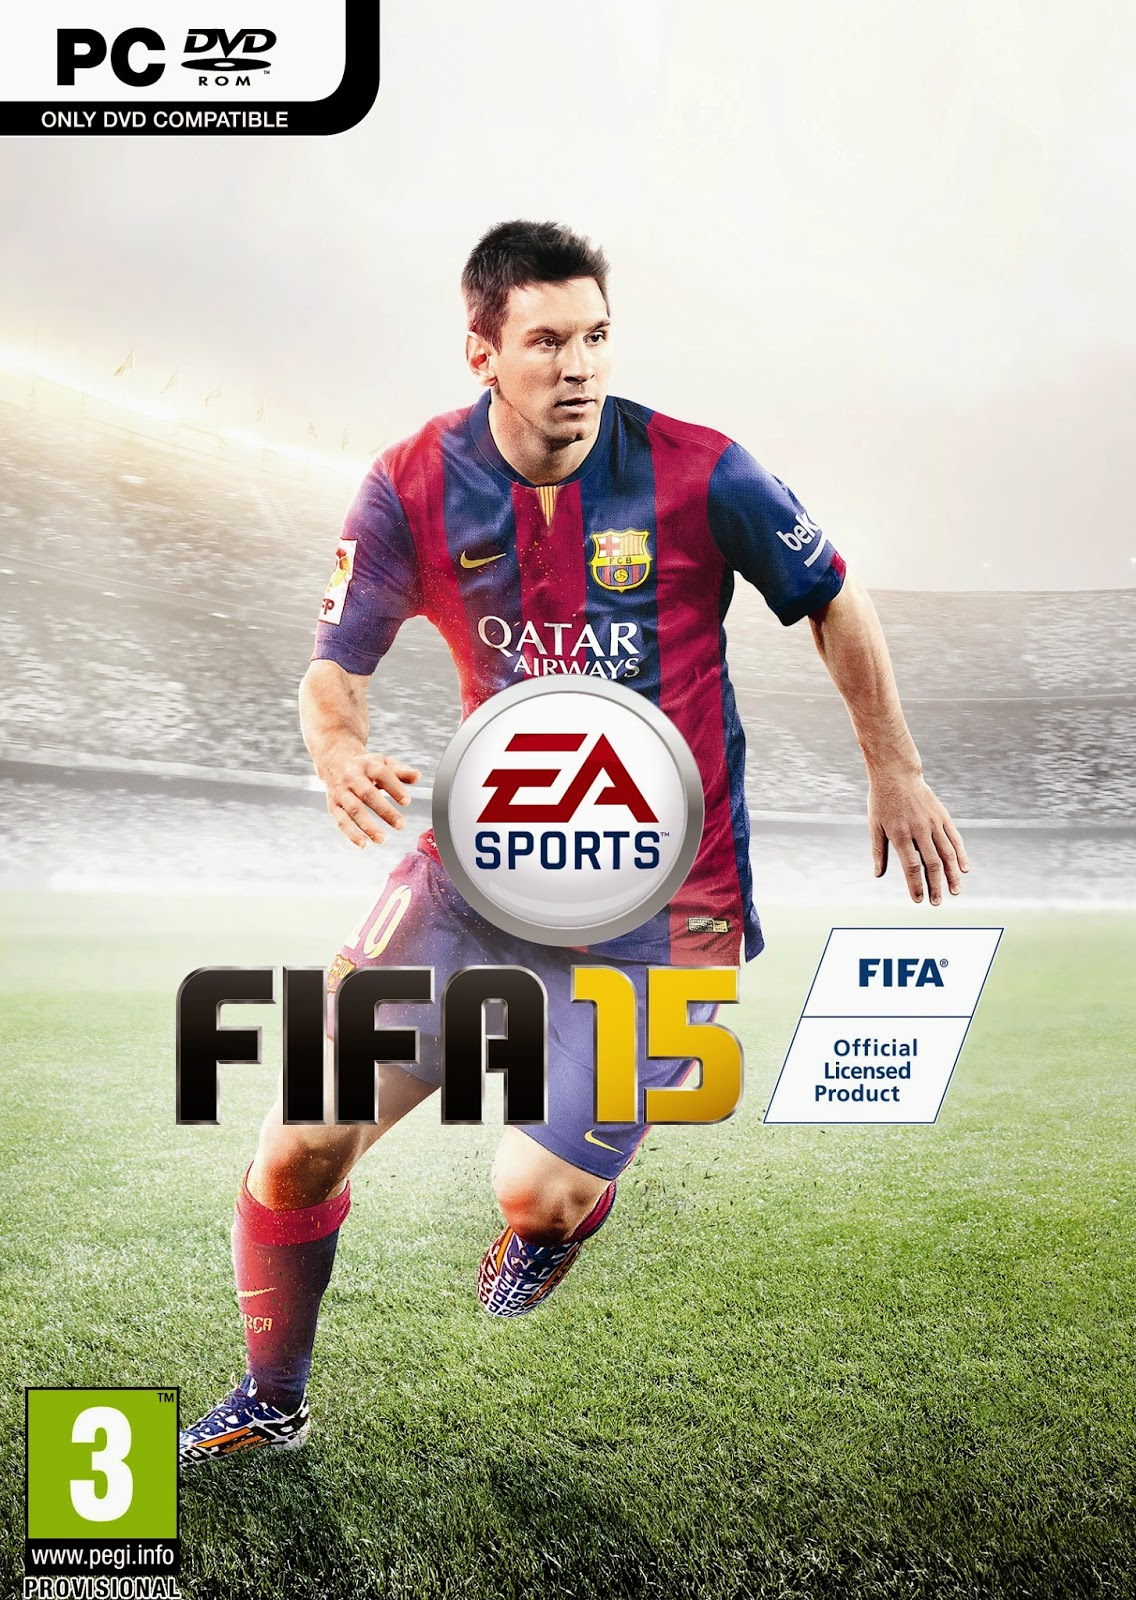 FIFA 15 ESPAÑOL LATINO y CASTELLANO PC Full